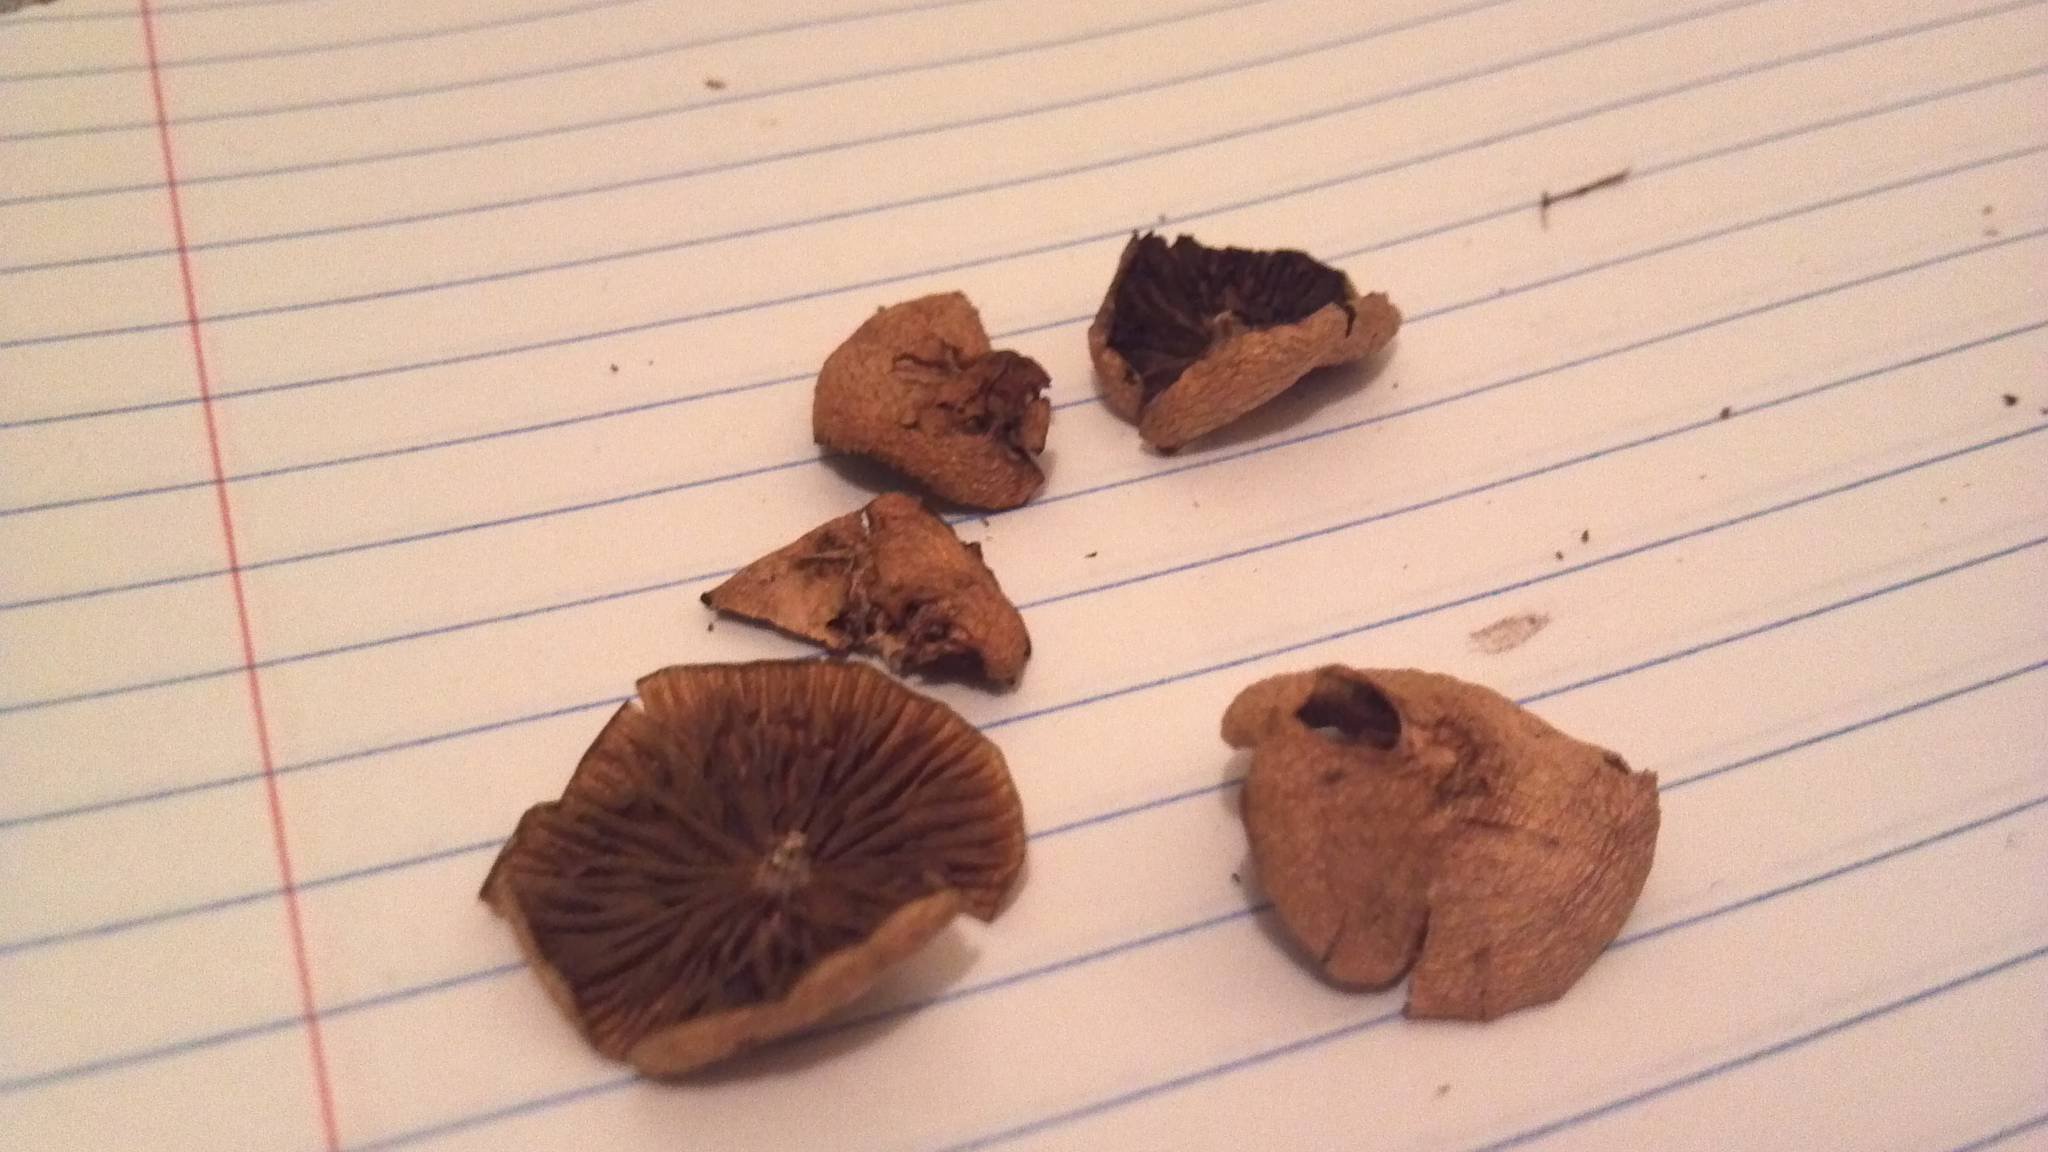 Best way to ID psilocybe cyanescens when they're dry